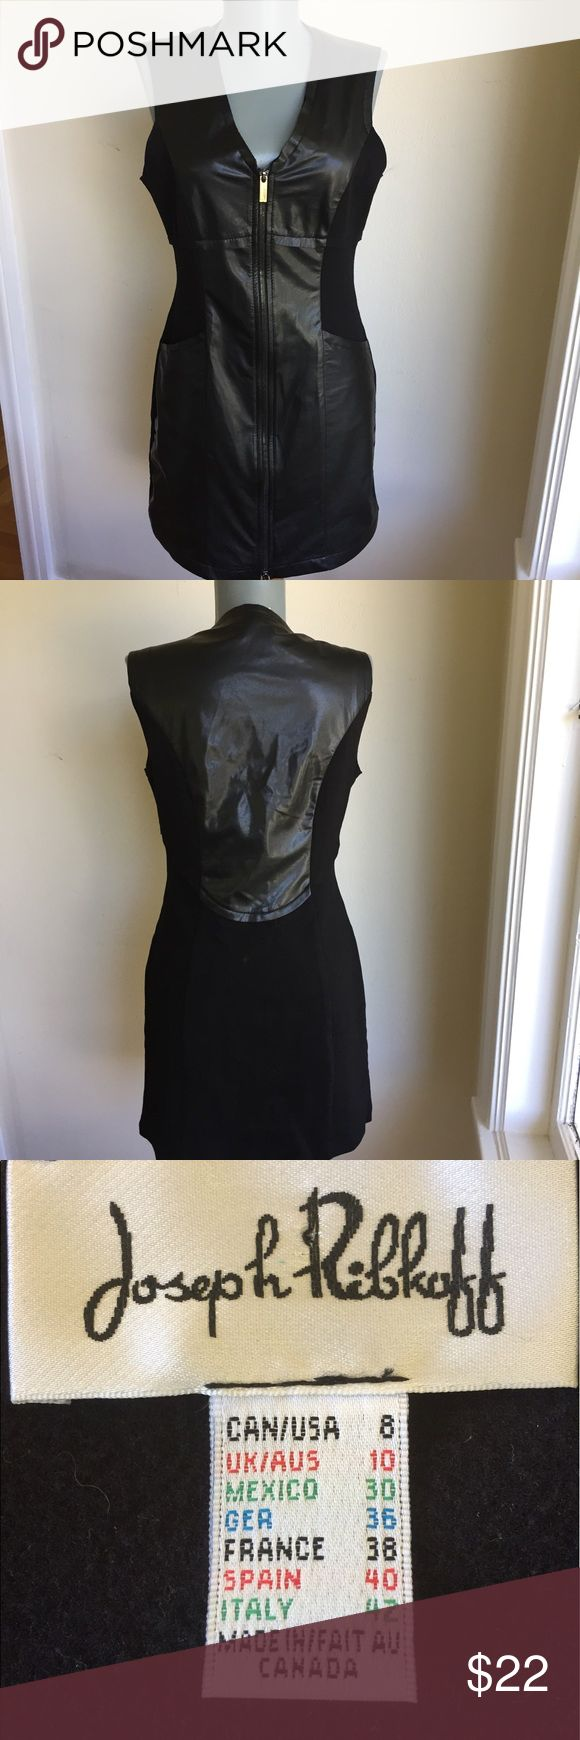 """Joseph Ribkoff Black Dress.  Ultra Chic. Joseph Ribkoff Black Dress.  Inserts of faux leather next to blend fabric to give this dress an ultra chic look.  Very flattering.  Zip up front. Flat lay measurements. Between underarms 18"""". Waist15"""". Hips18"""". Length 32 3/4"""". This Ribkoff came with no fabric content or care labels.  Nor does it have hem around sleeves. See pic 4.  I have washed on delicate wash and dry cycles successfully. Ultra Chic.  •••FIRM PRICE••• Joseph Ribkoff Dresses"""